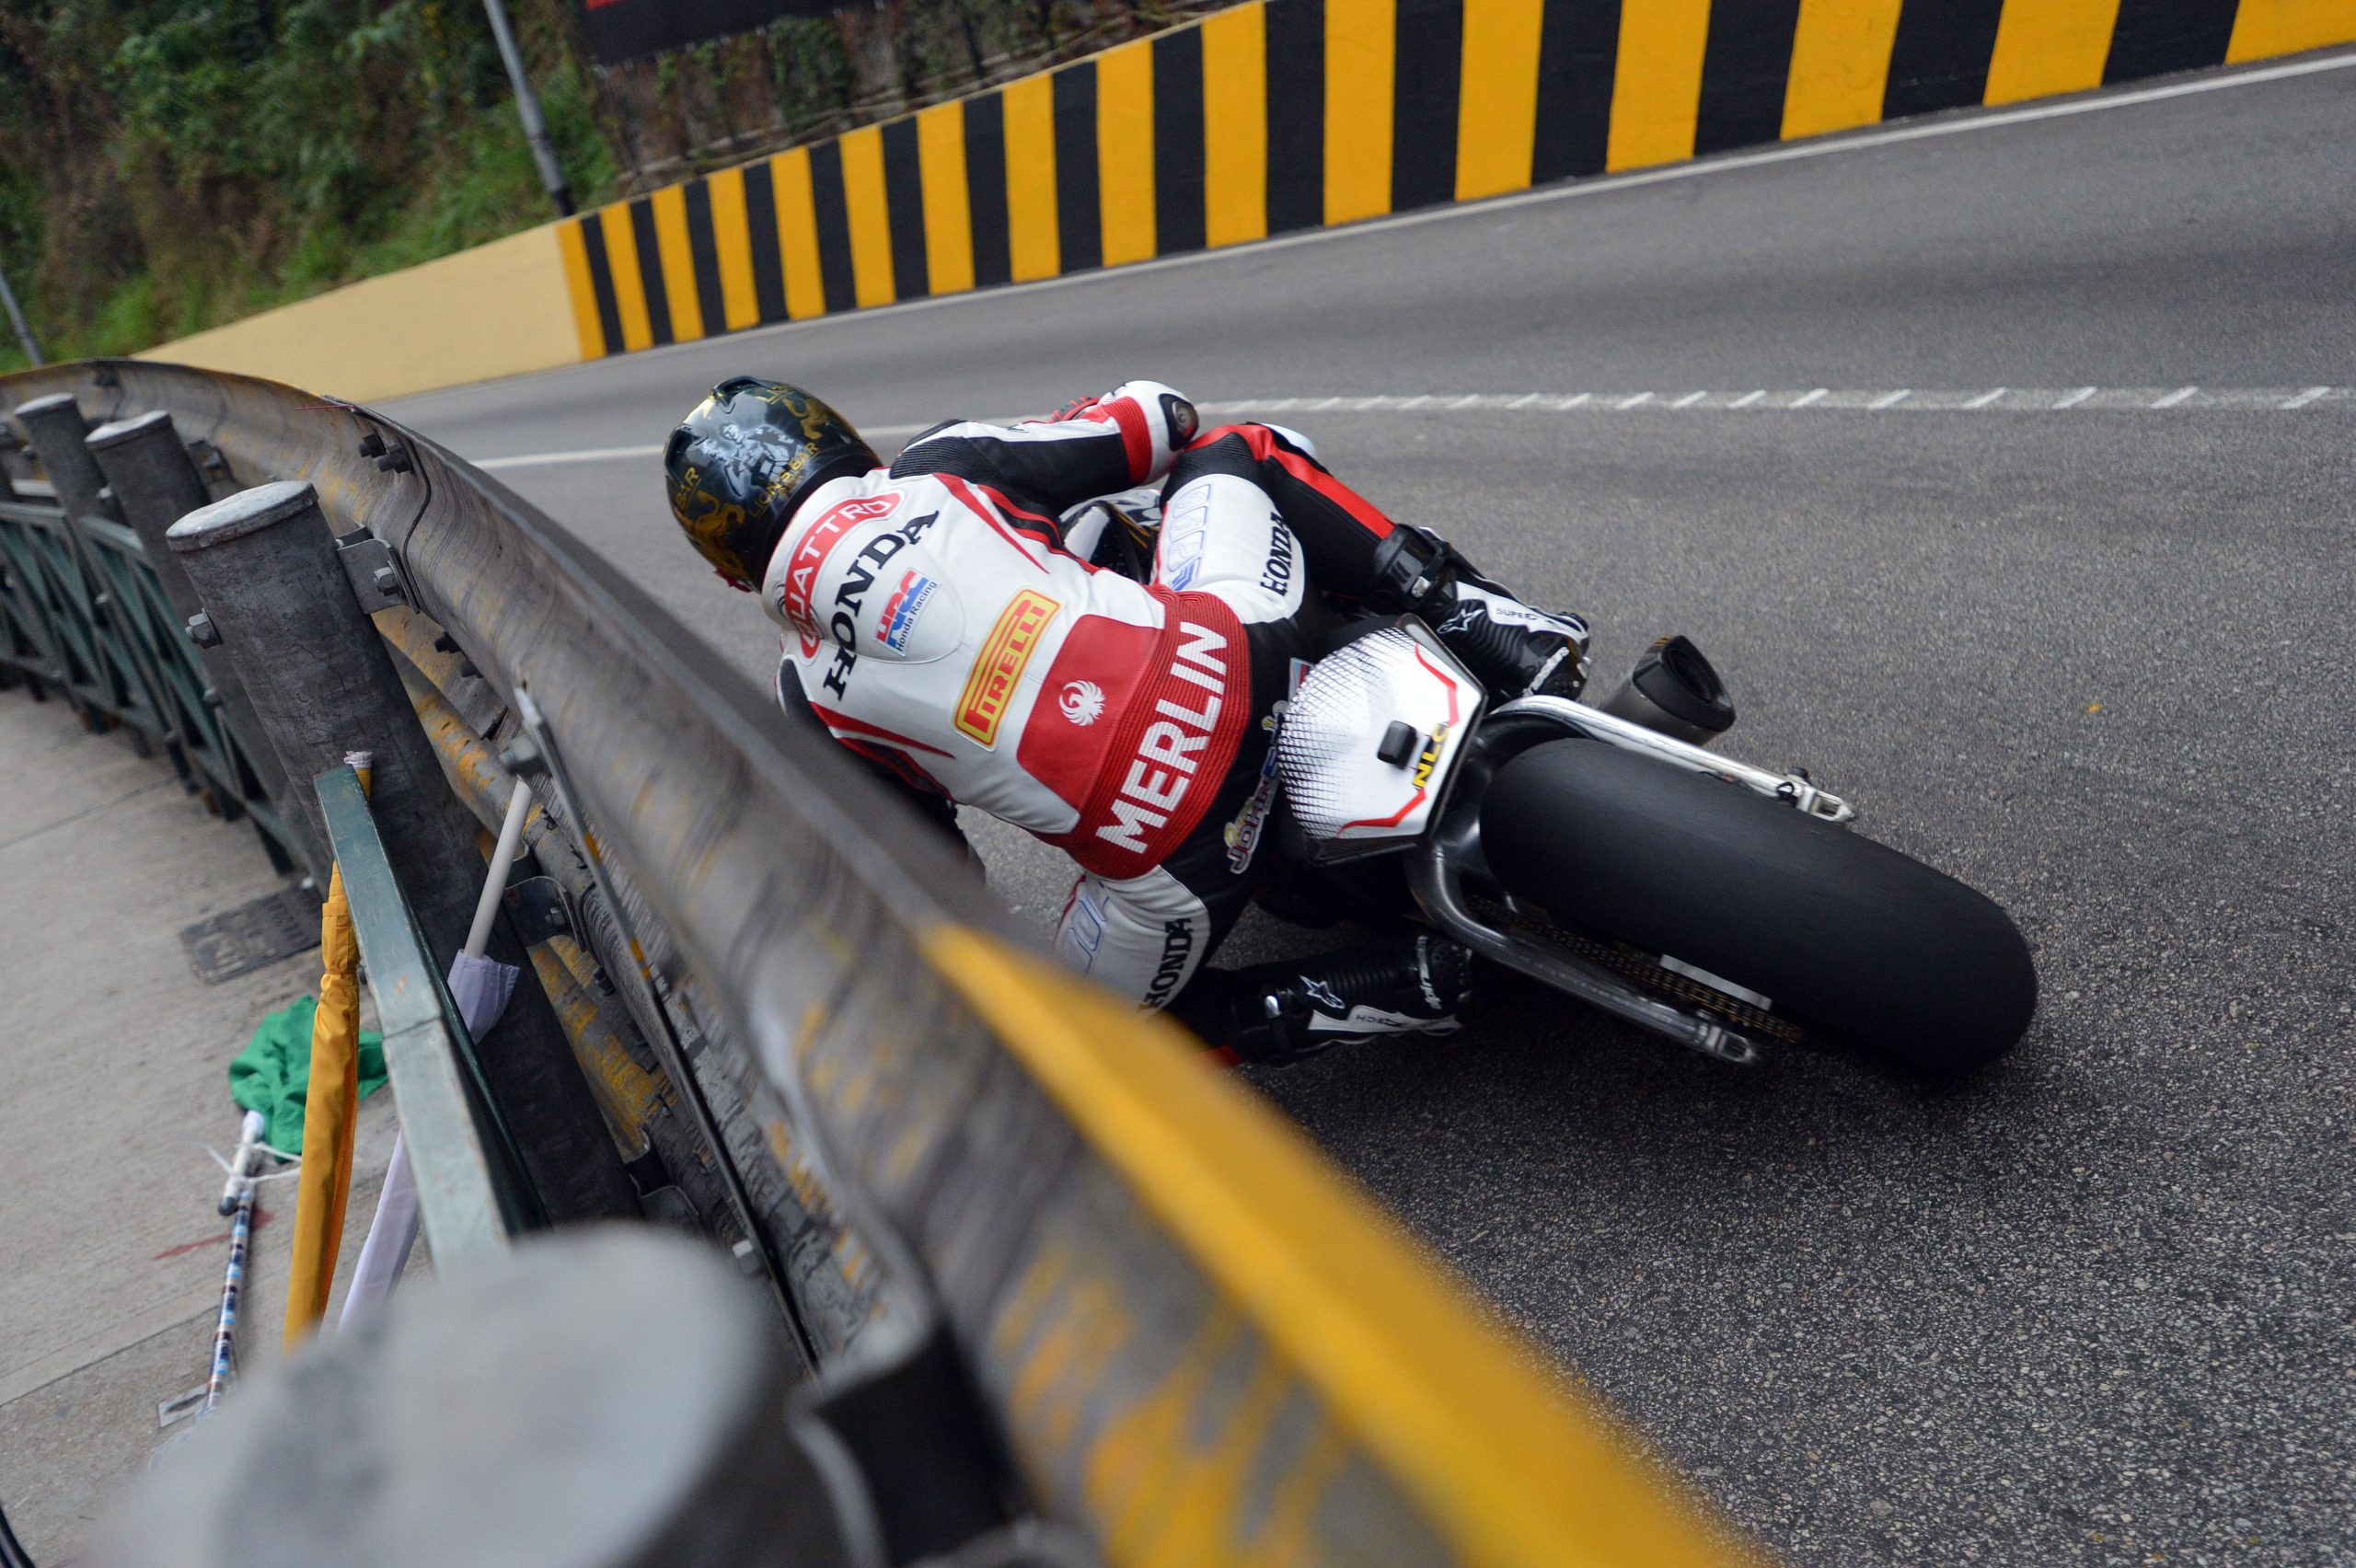 Gary Johnson - Macau image by Stephen Davison - Pacemaker Press International